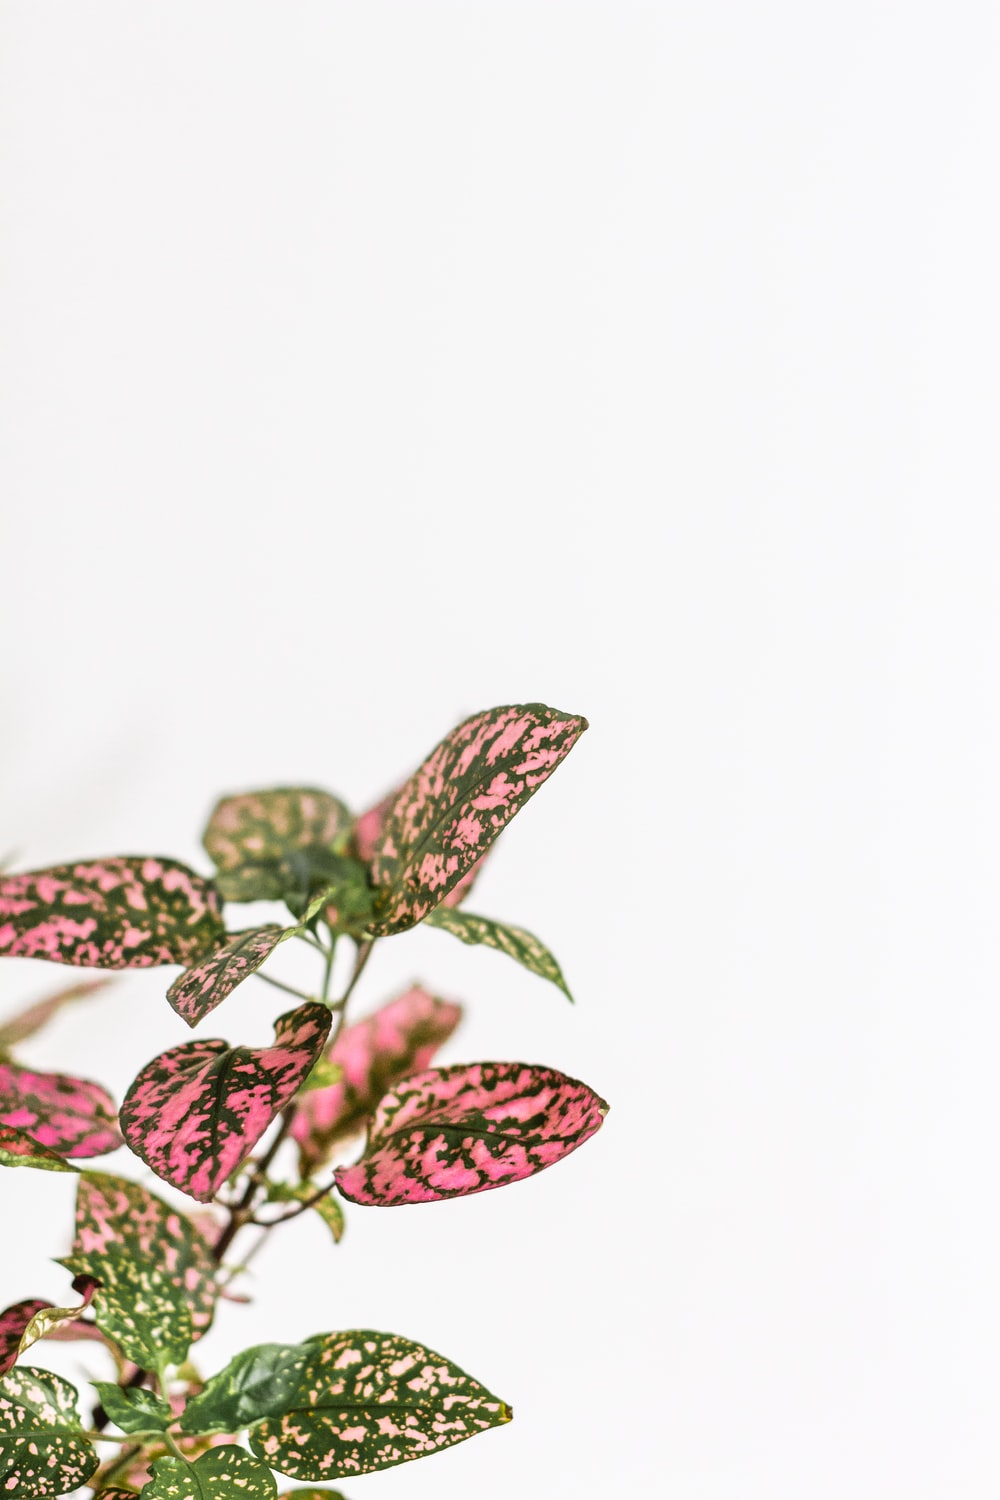 red and black butterfly on white background